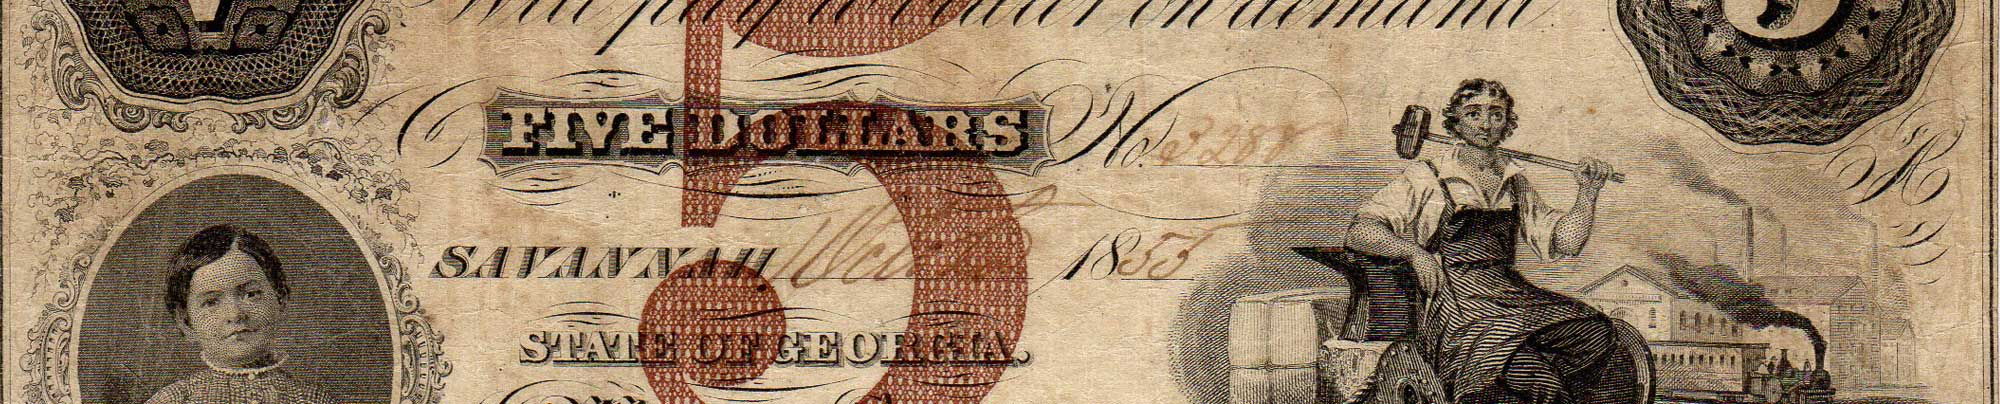 Confederate five dollar bill